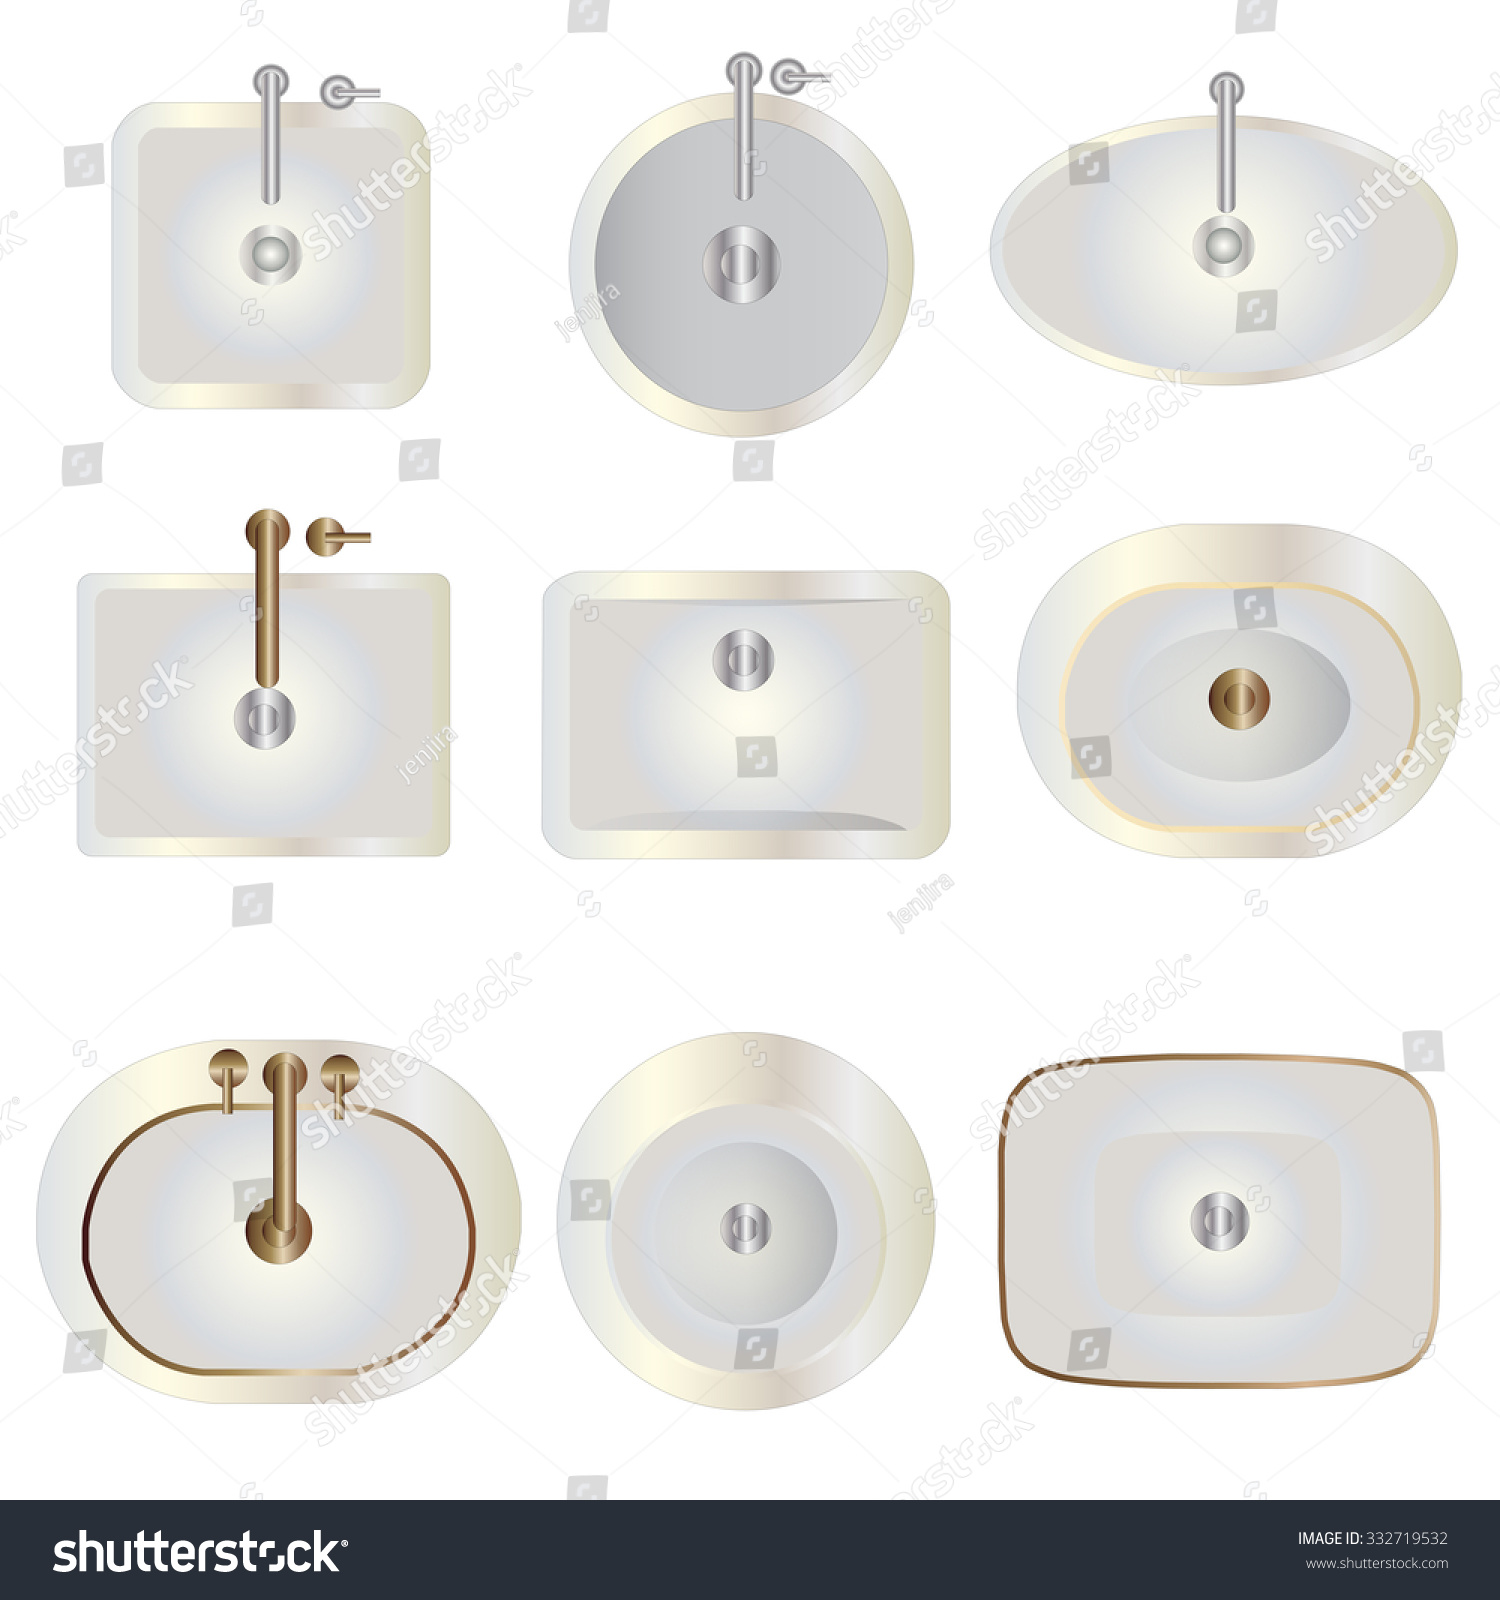 Bathroom sink top view - Bathroom Basin Top View Set 8 For Interior